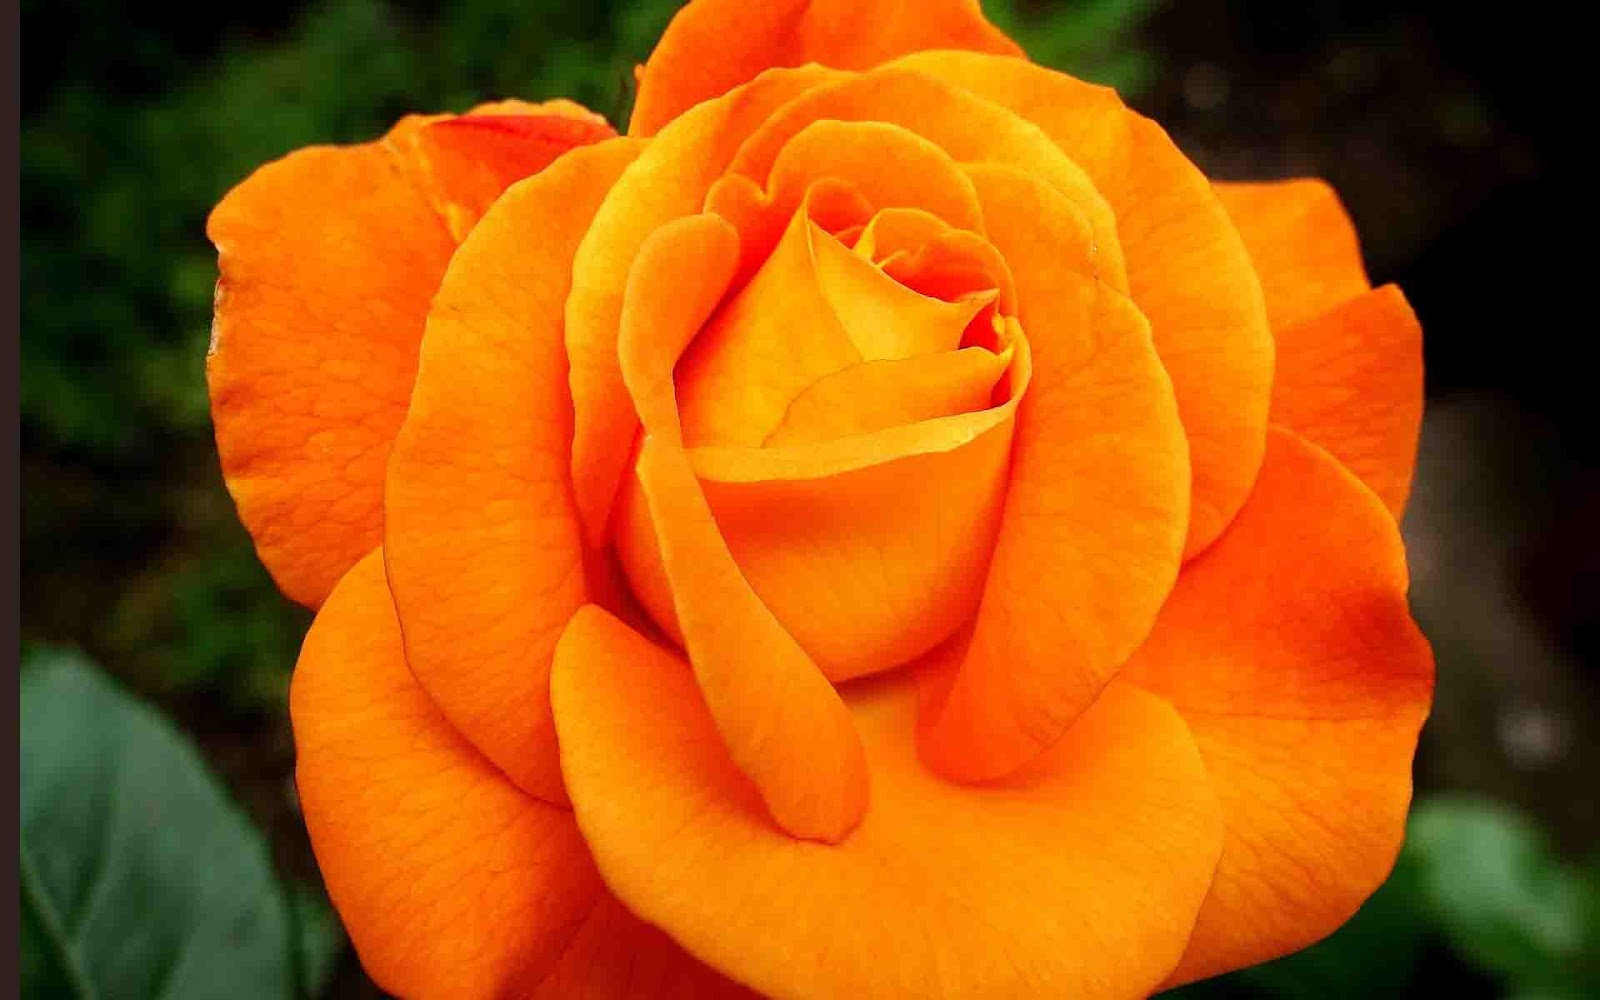 flowers images for whatsapp